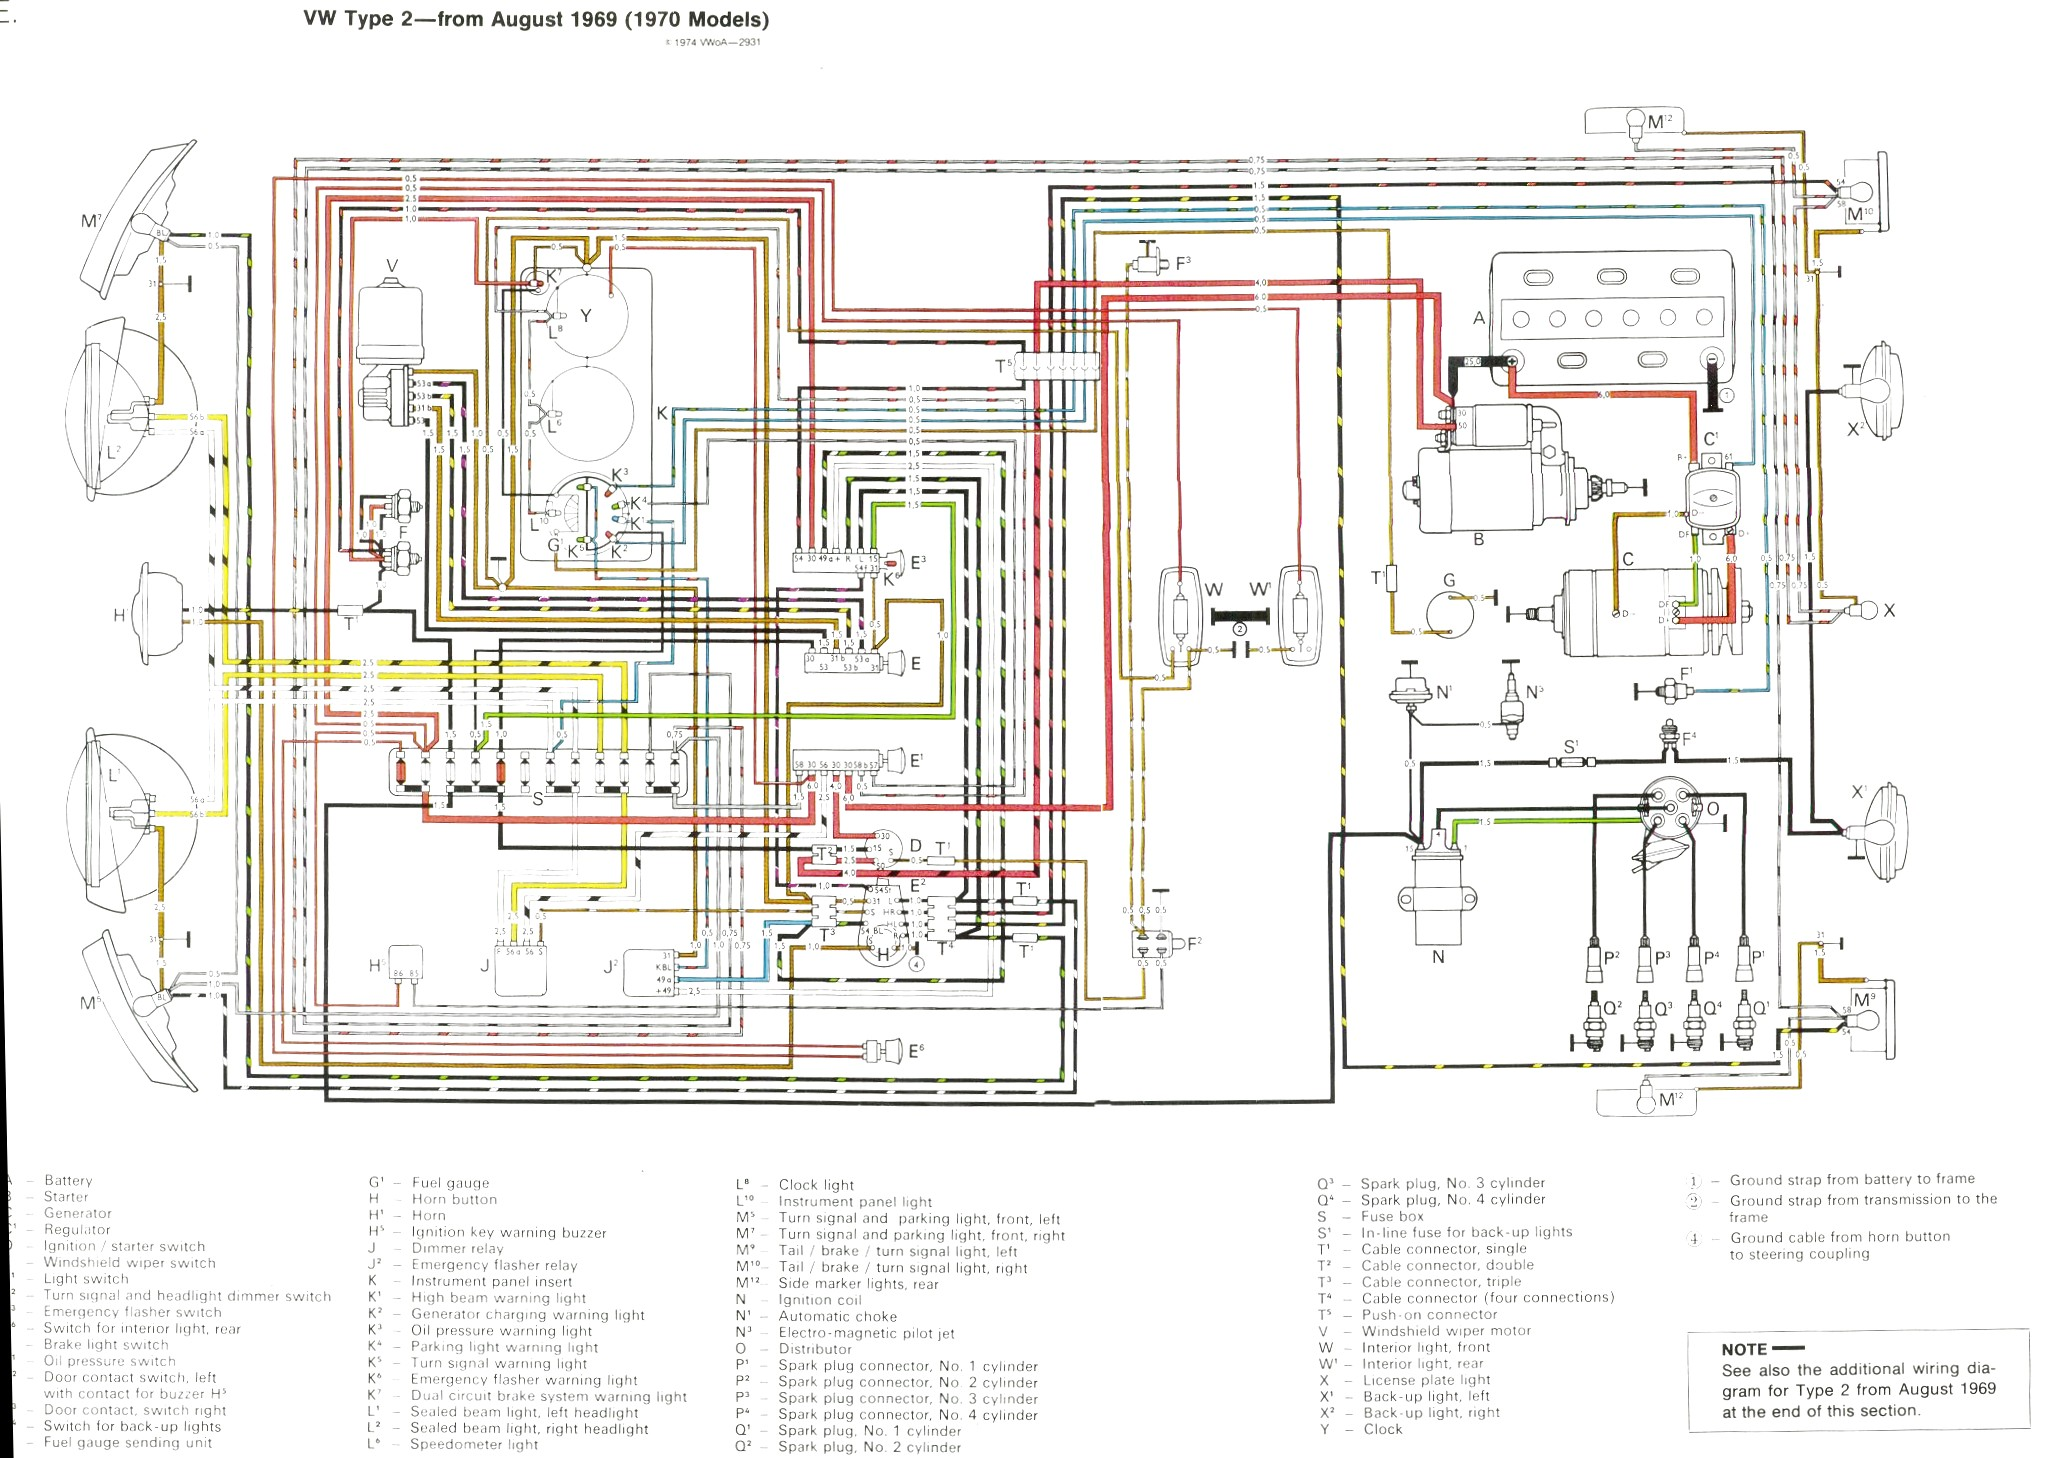 bus 69 70 vintagebus com vw bus (and other) wiring diagrams Wiring Harness Diagram at sewacar.co